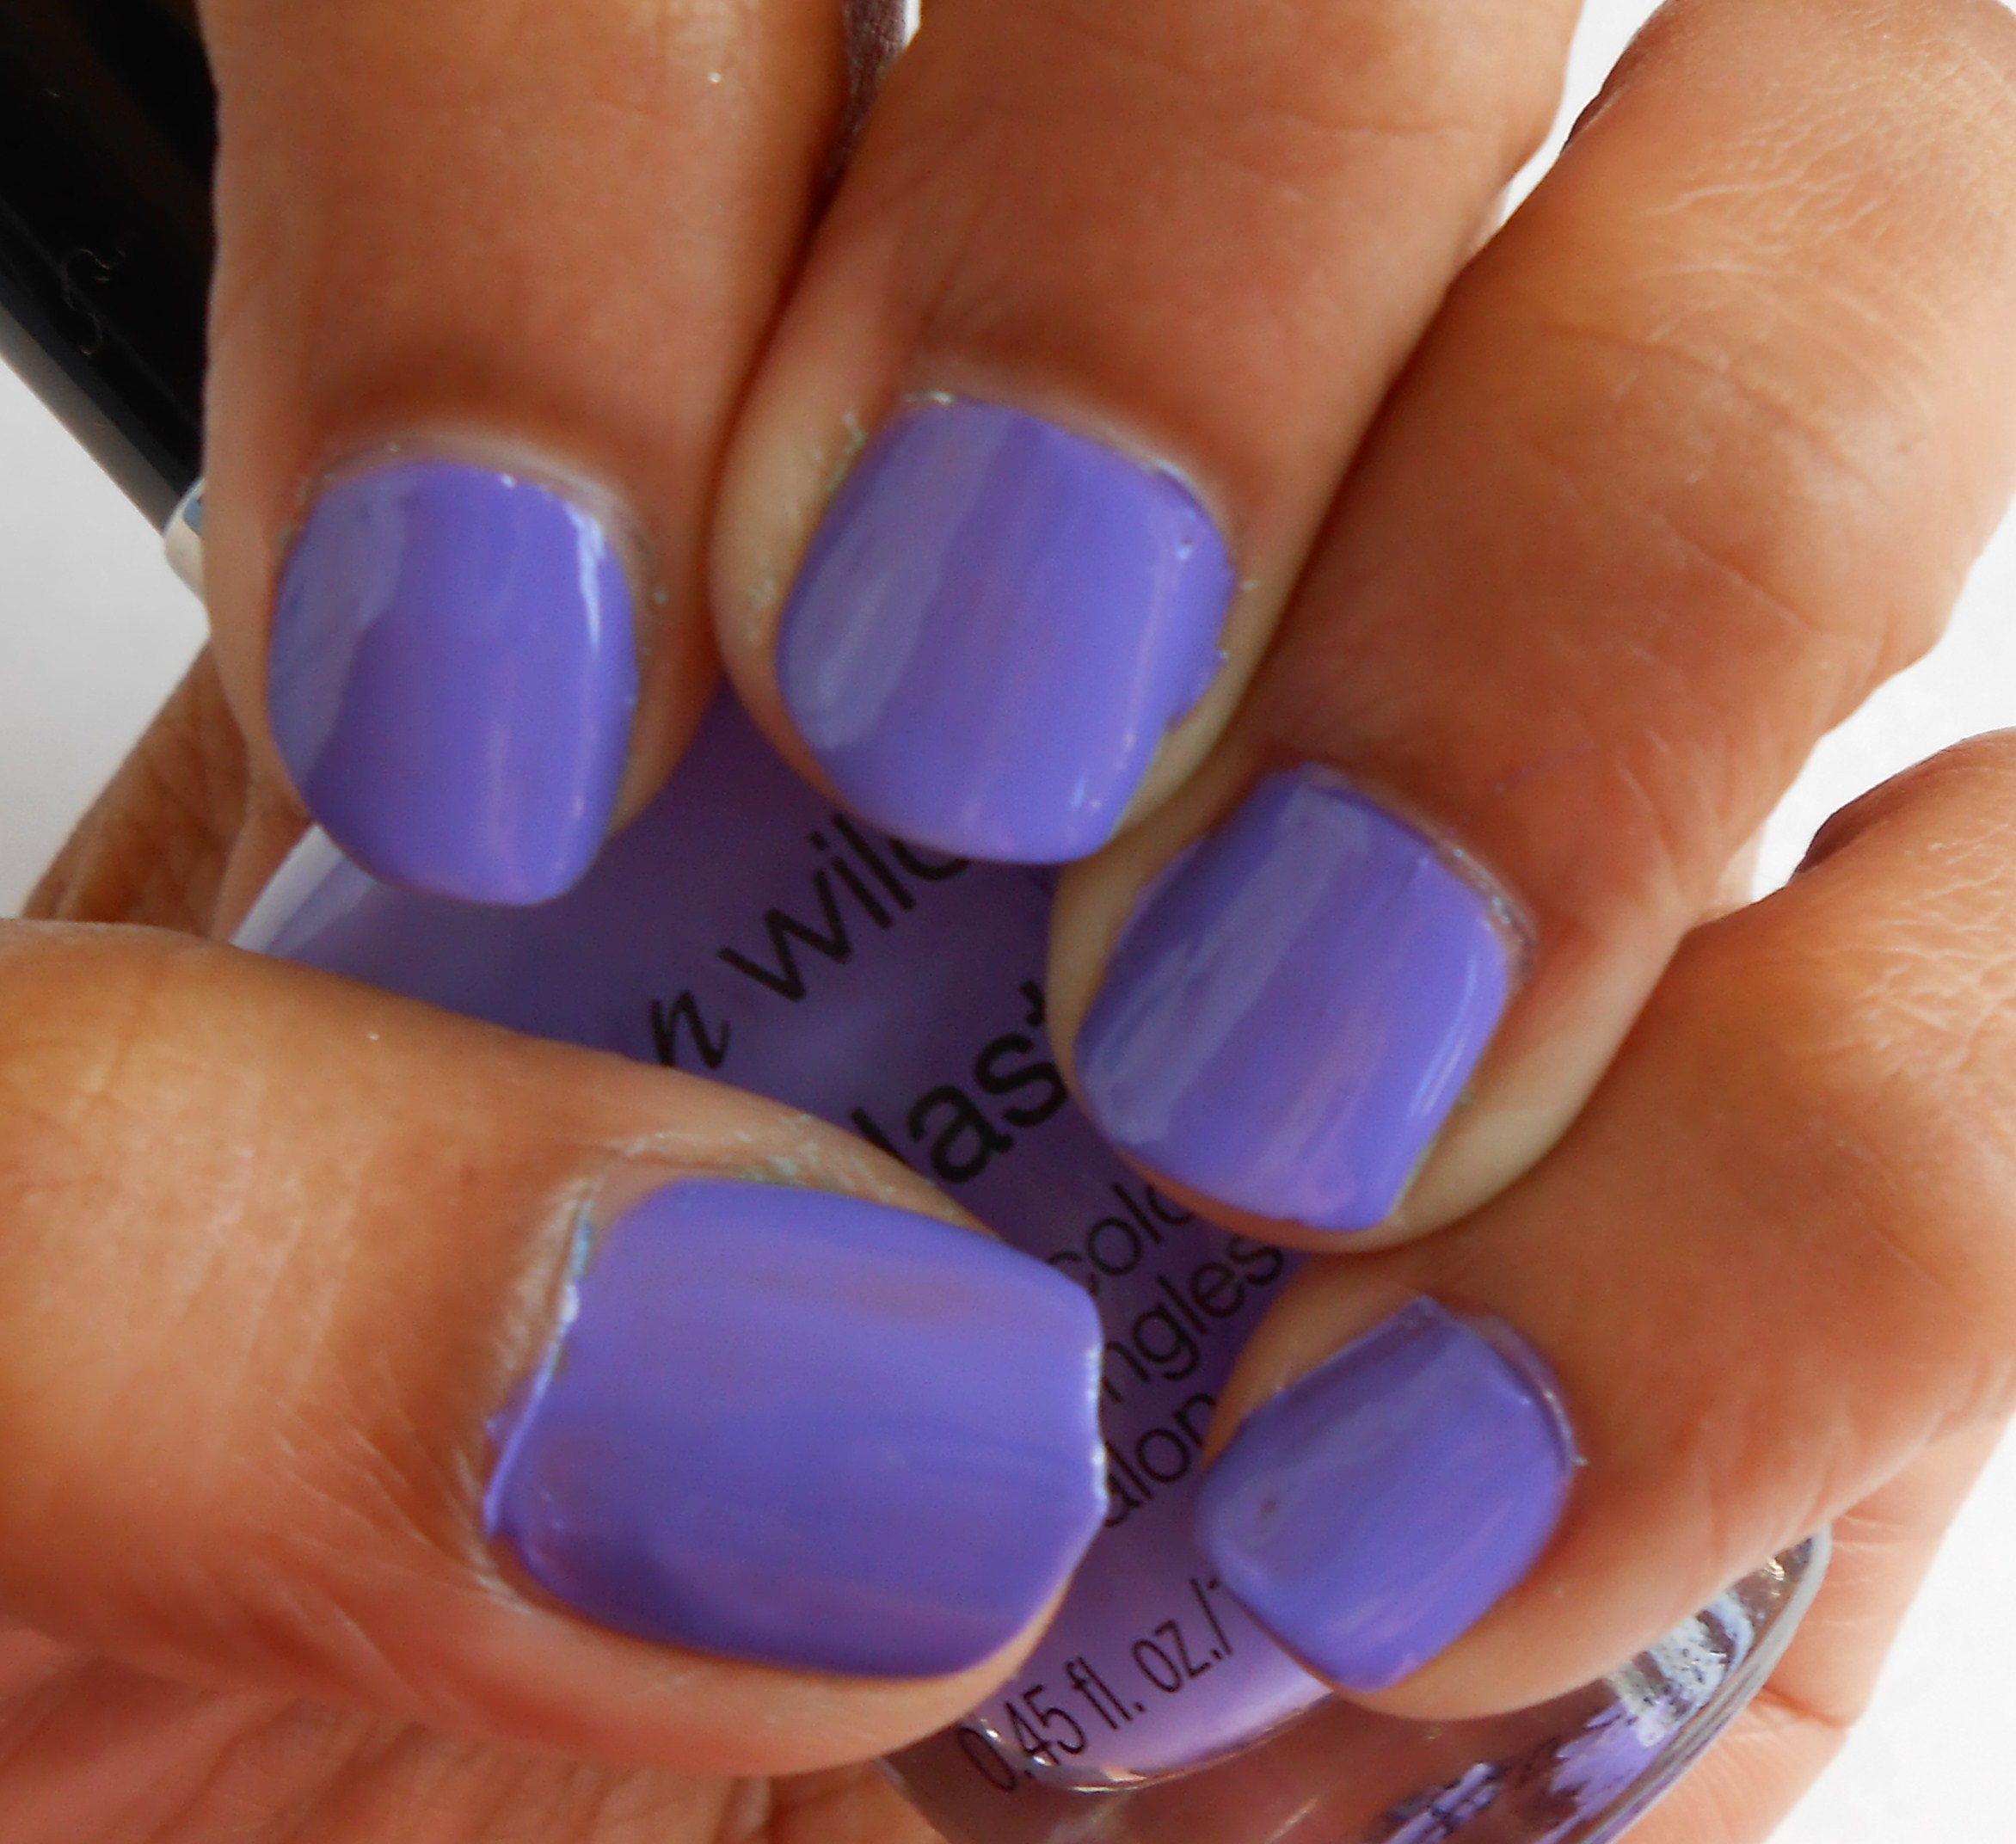 Nail Colors Are In For Summer 2013 | Joy Studio Design Gallery - Best Design